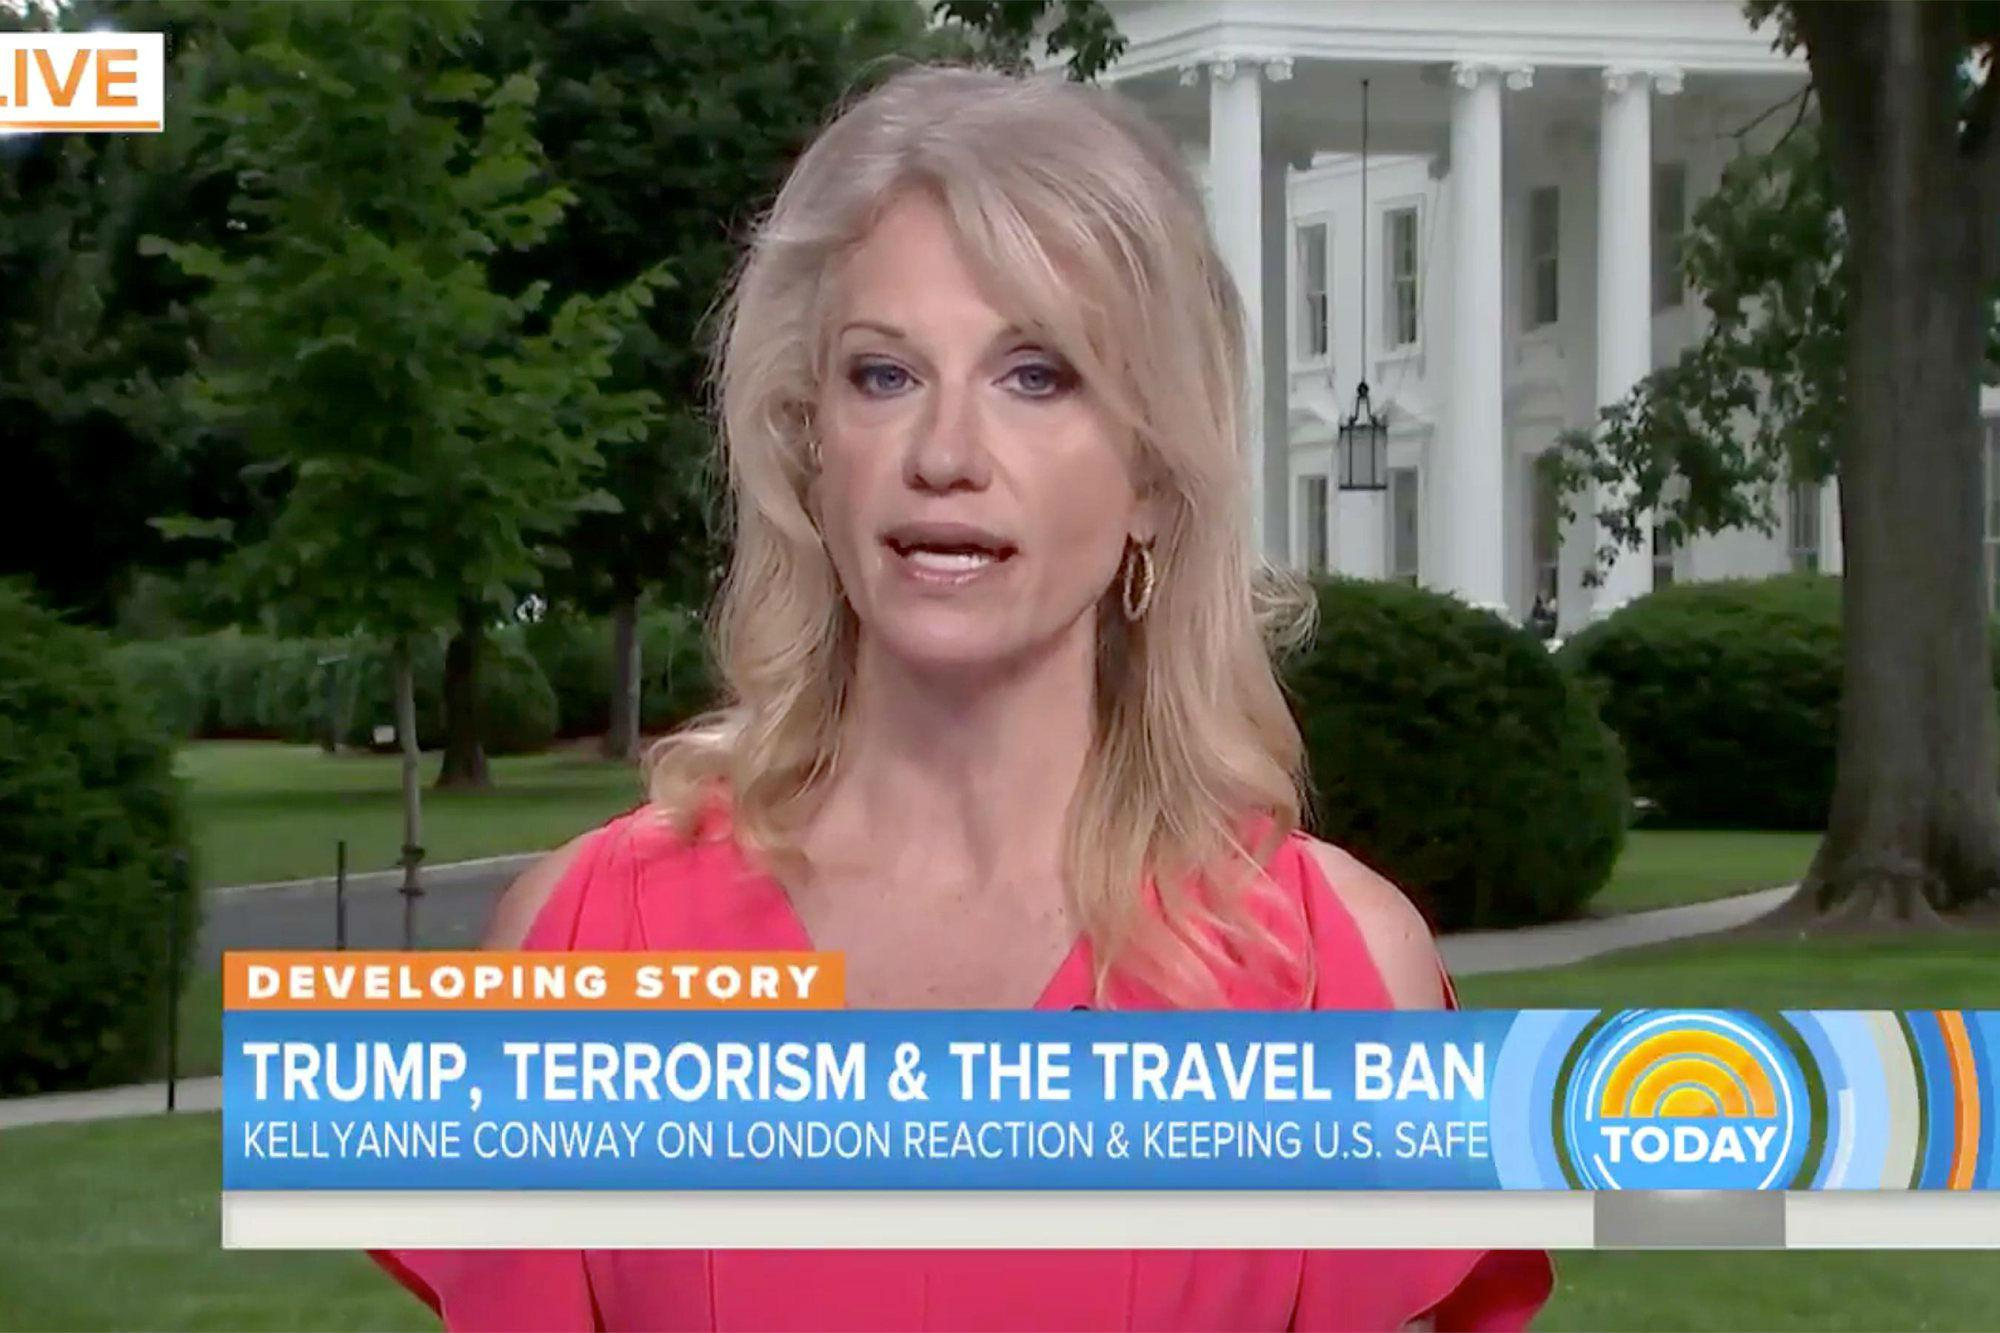 Kellyanne Conway says media is obsessed with Trump s tweets after